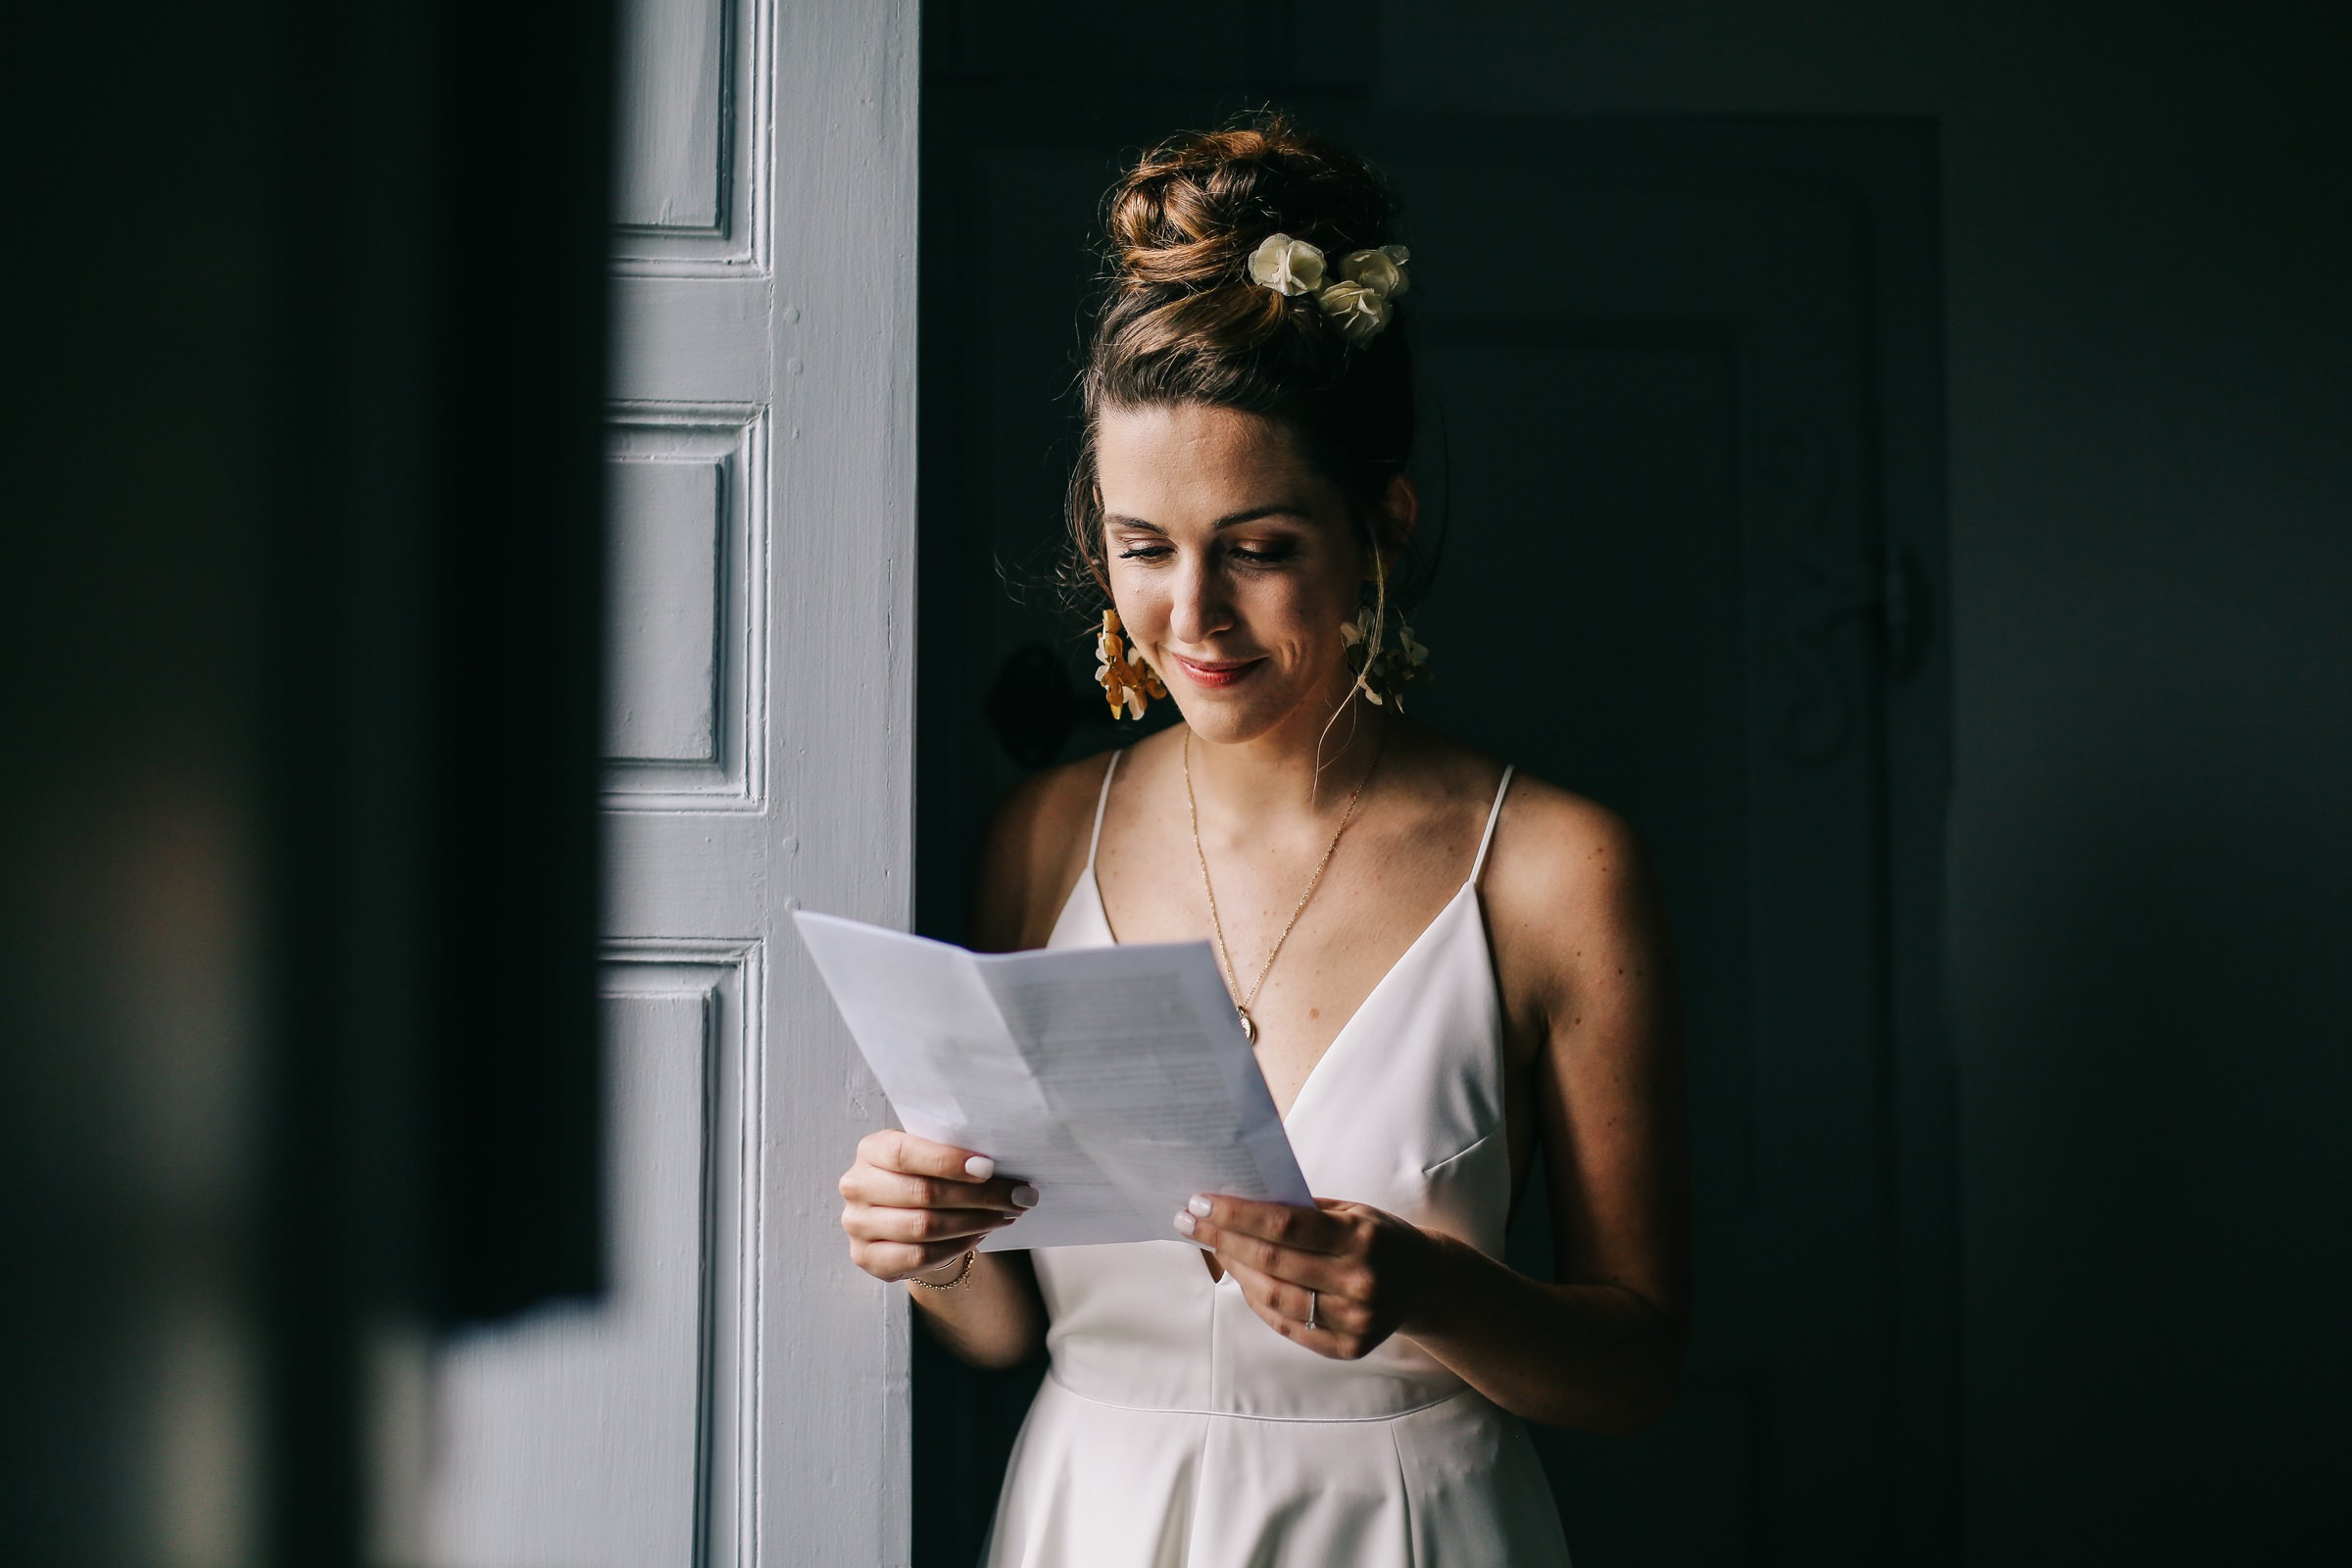 bride reading letter in window light - photo by Amandine Ropars